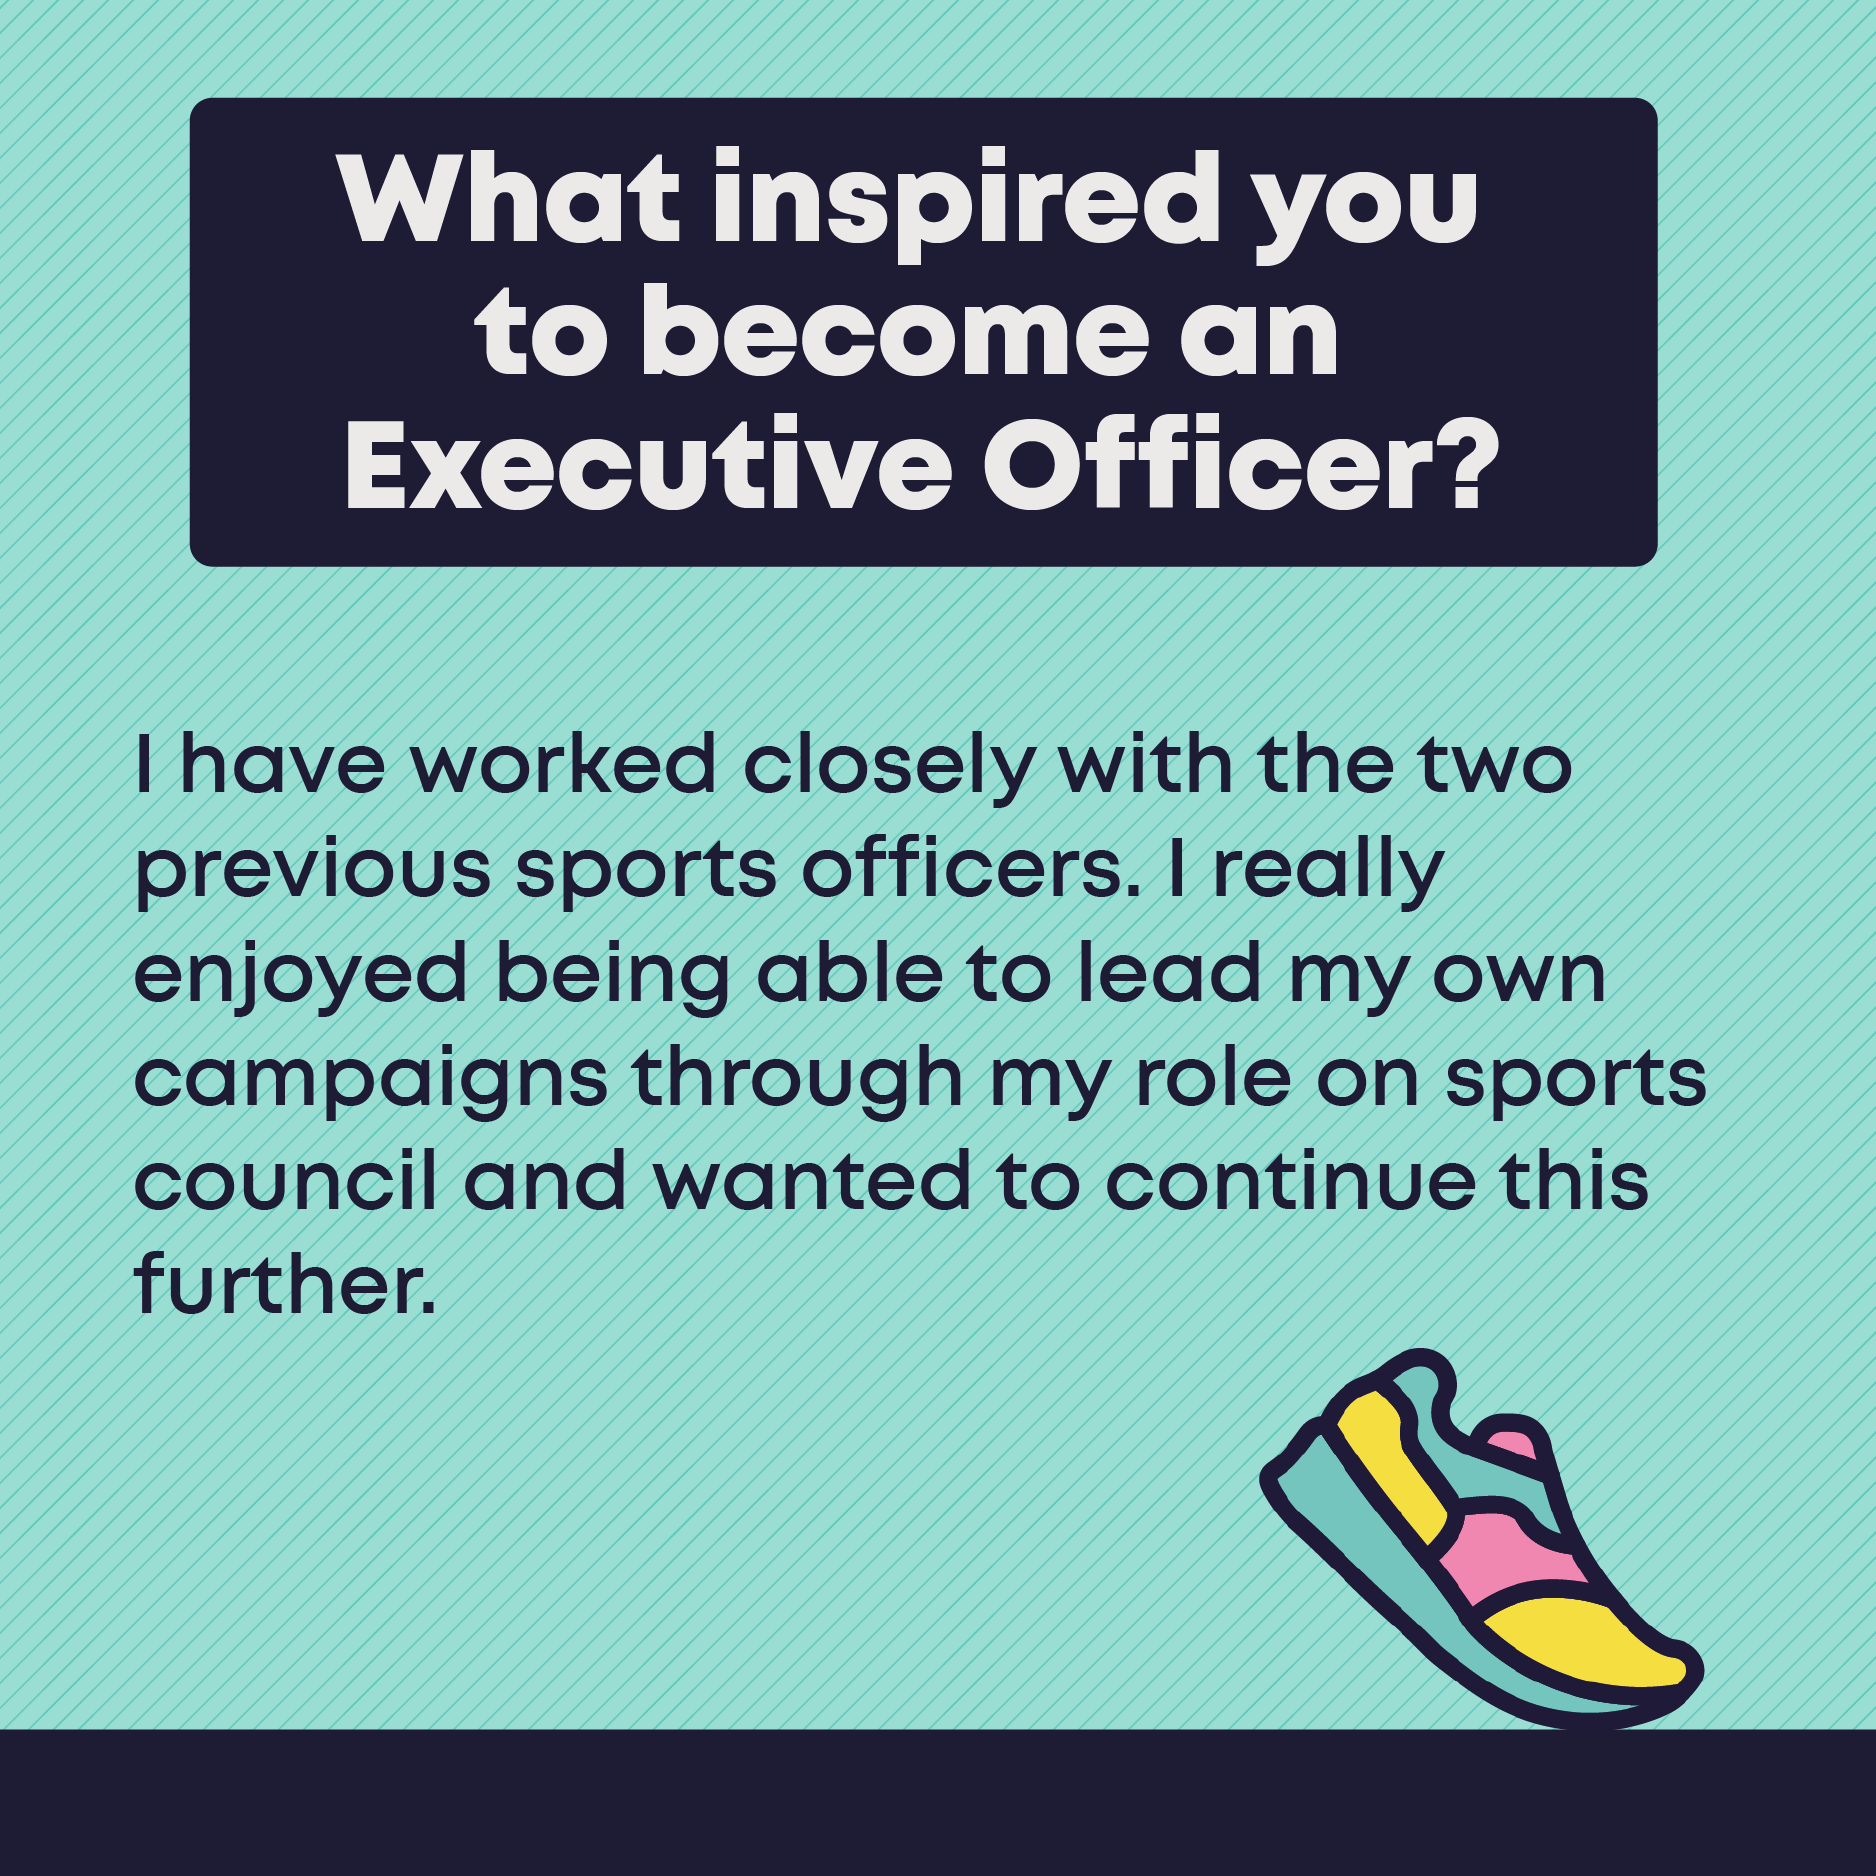 What inspired you to become an Executive Officer? I have worked closely with the two previous sports officers. I really enjoyed being able to lead my own campaigns through my role on sports council and wanted to continue this further.